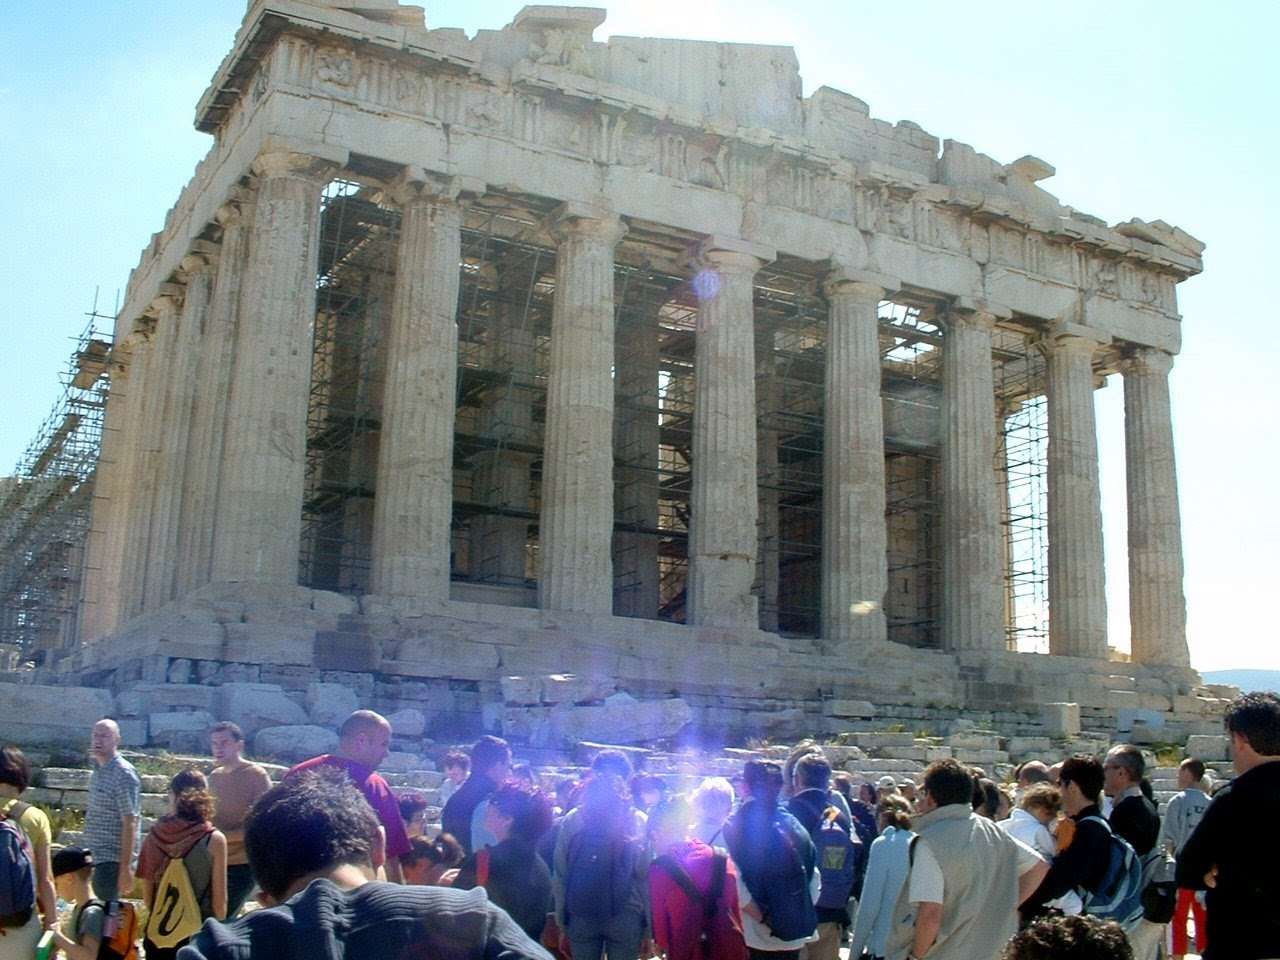 These are the crowds behind which I had to shuffle in 100 degree heat to visit the Parthenon during the Athens 2004 Games…pre-buy your tickets!